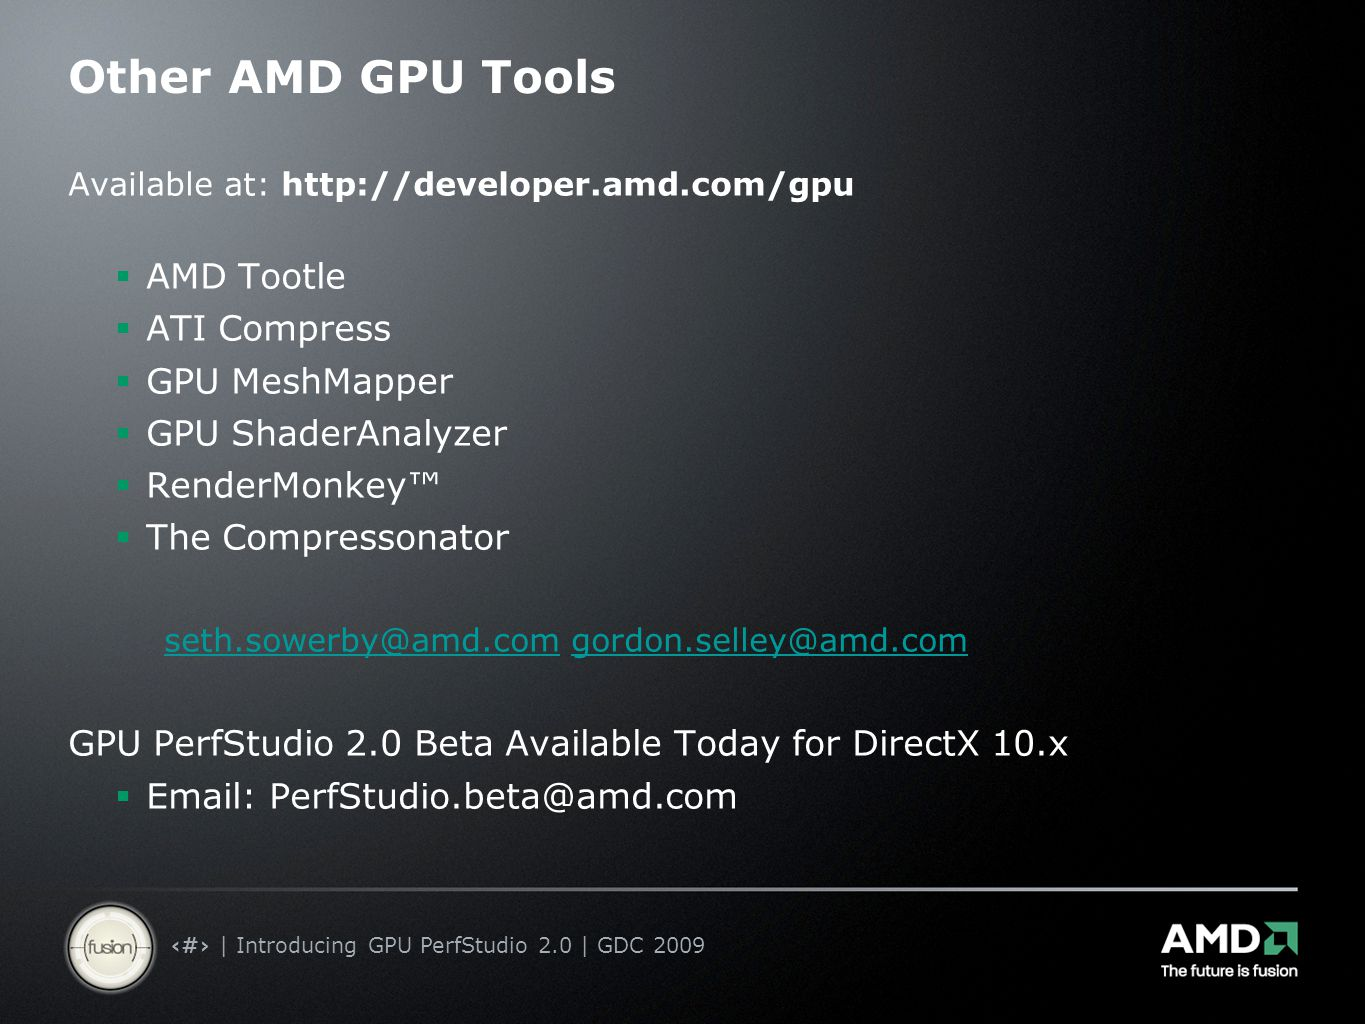 8 | Introducing GPU PerfStudio 2.0 | GDC 2009 Other AMD GPU Tools Available at: http://developer.amd.com/gpu  AMD Tootle  ATI Compress  GPU MeshMapper  GPU ShaderAnalyzer  RenderMonkey™  The Compressonator seth.sowerby@amd.comseth.sowerby@amd.com gordon.selley@amd.comgordon.selley@amd.com GPU PerfStudio 2.0 Beta Available Today for DirectX 10.x  Email: PerfStudio.beta@amd.com